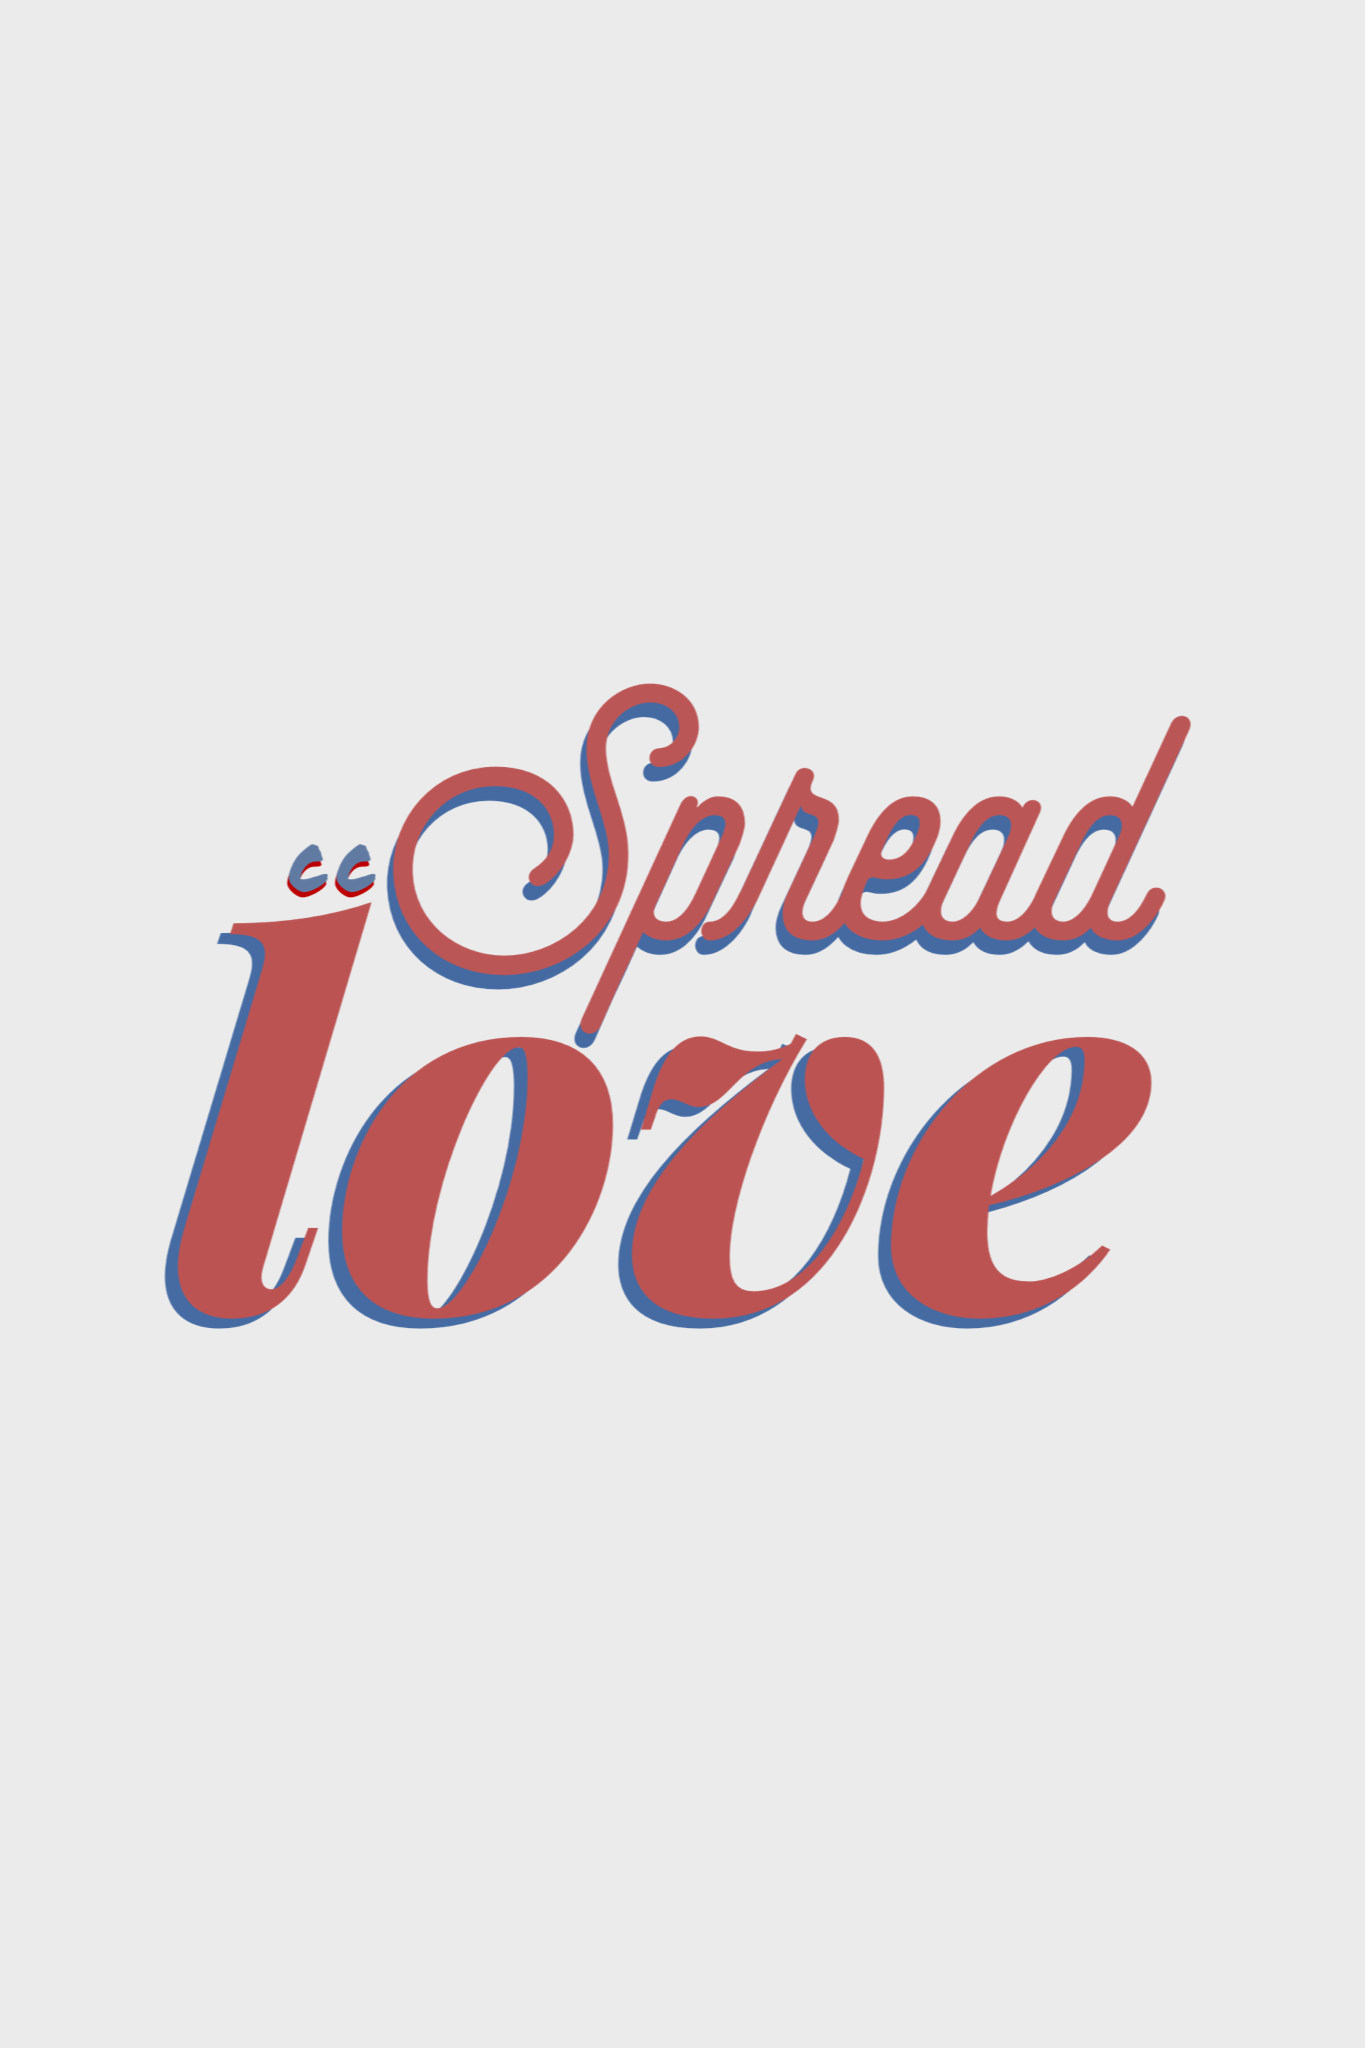 spread love by cc the love